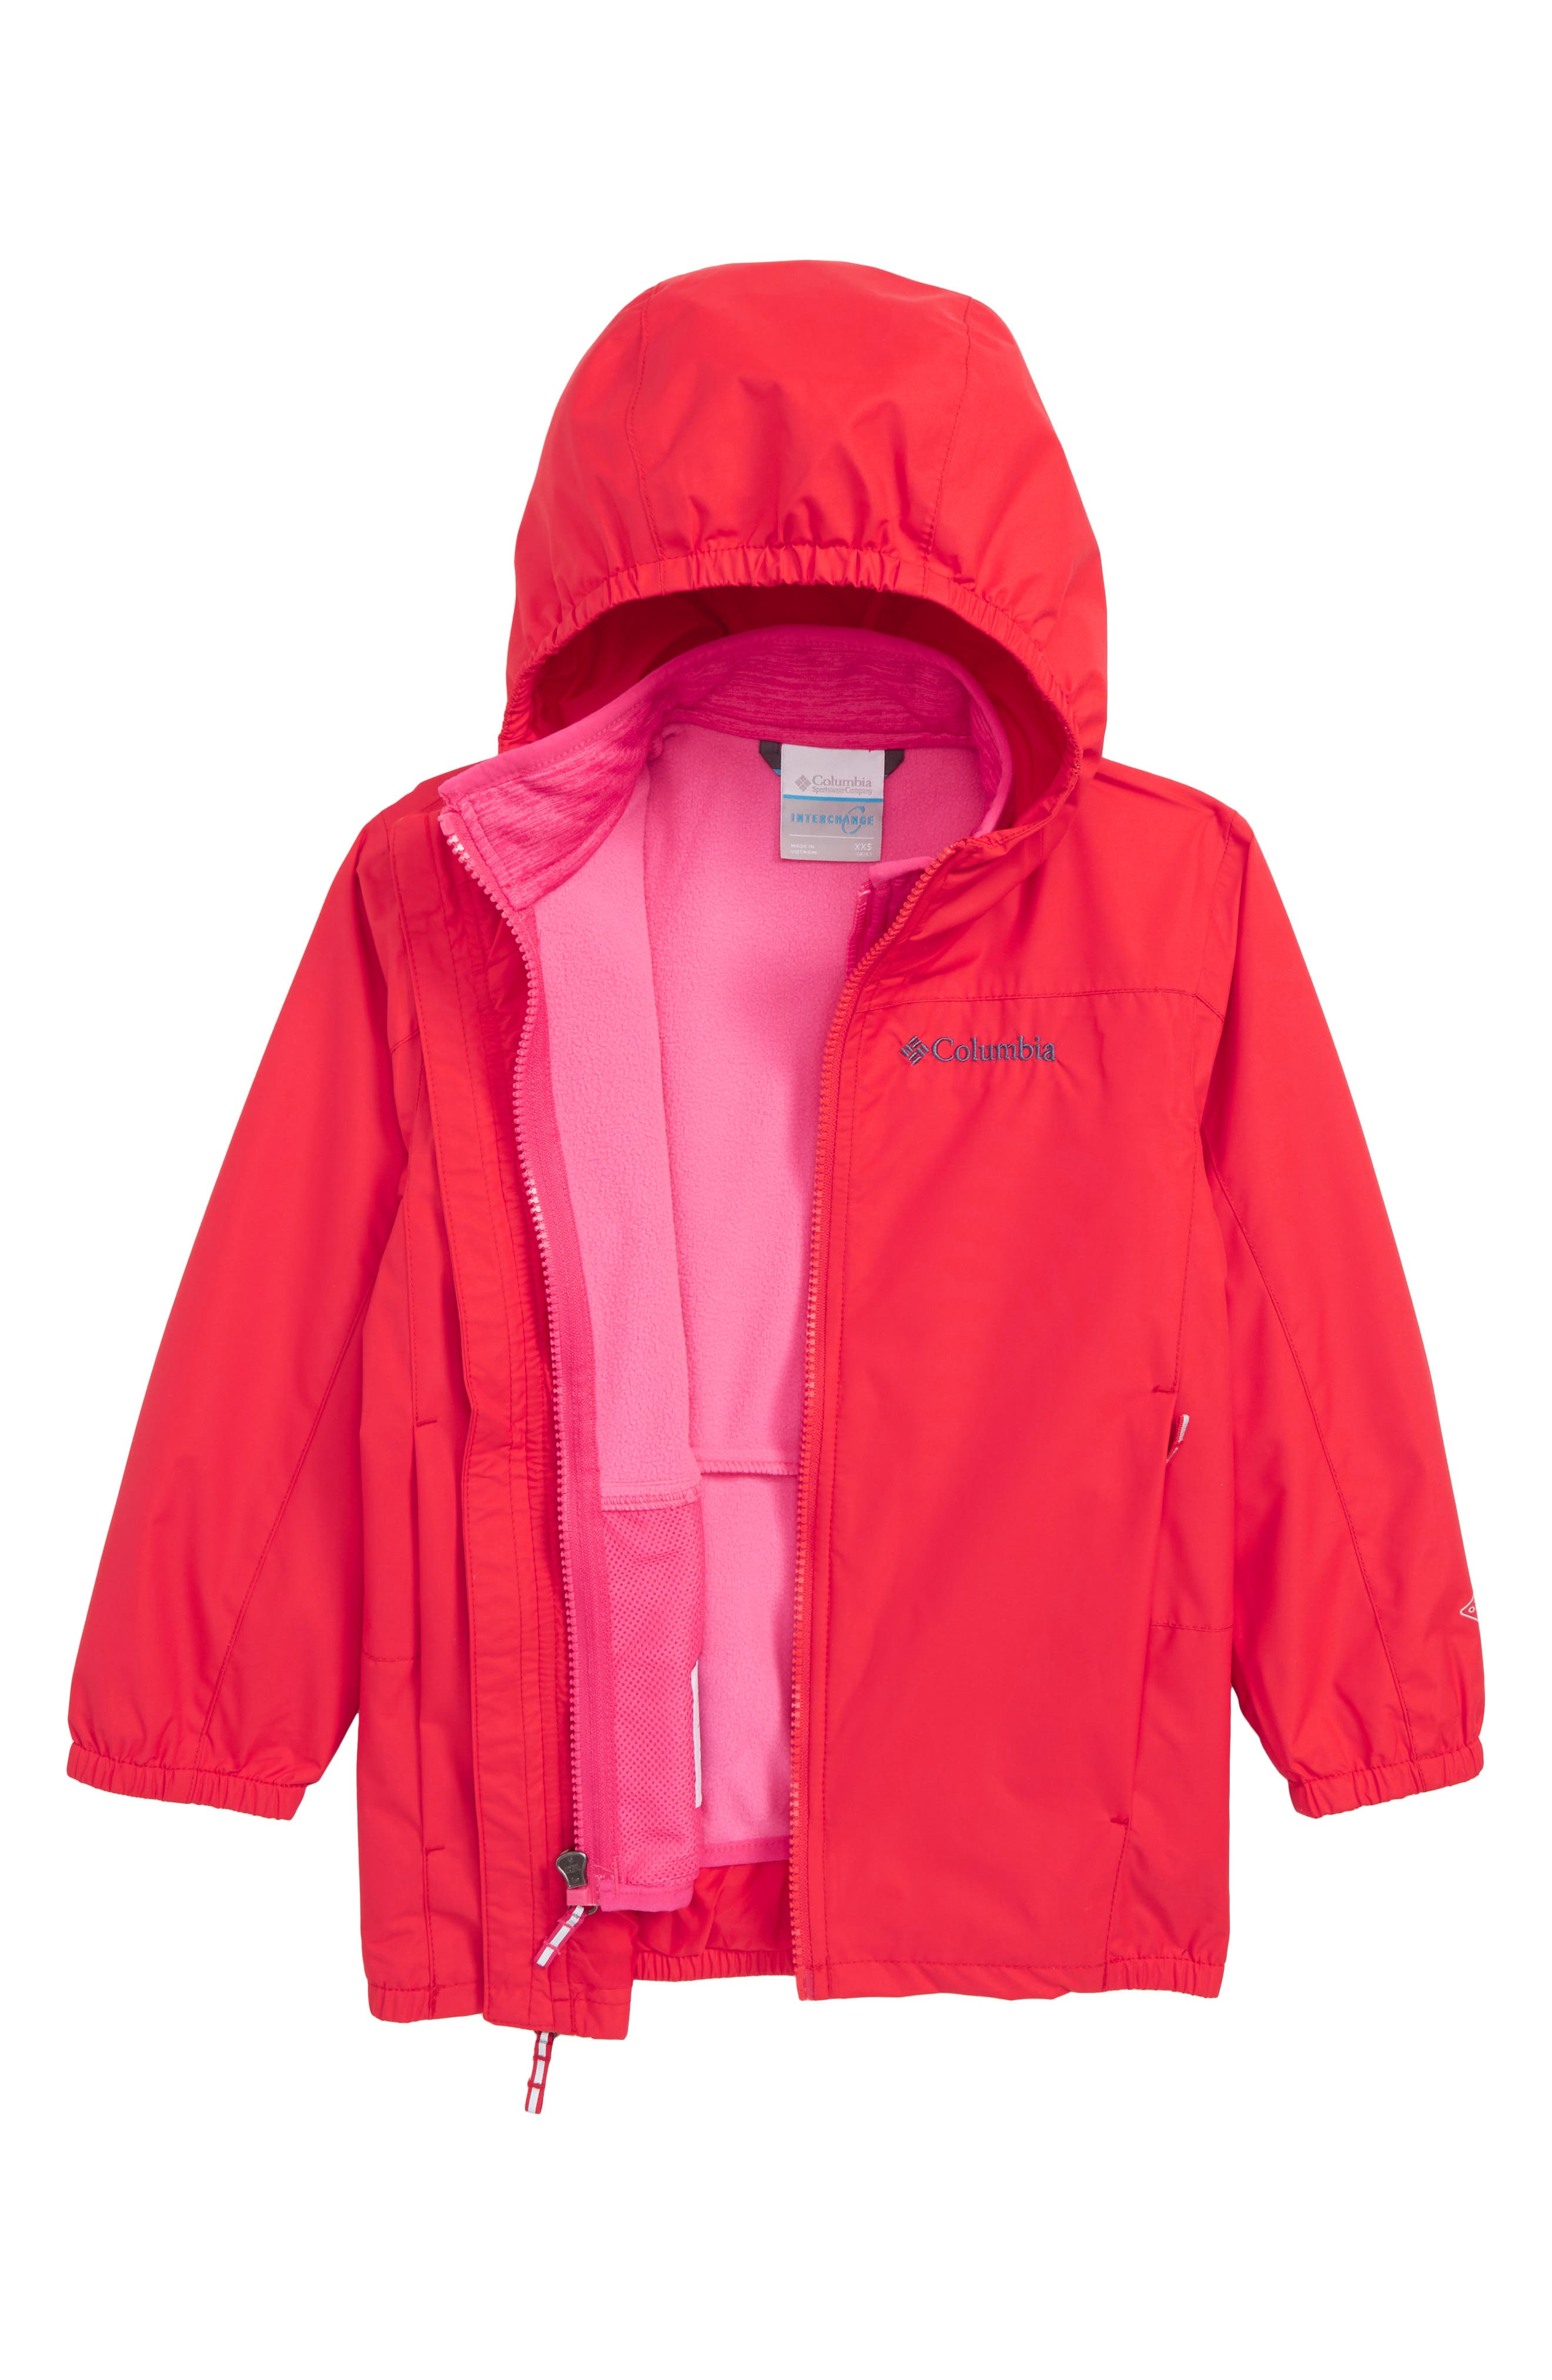 Explore S'more Omni-Tech<sup>™</sup> Waterproof 3-in-1 Jacket,                         Main,                         color, RED SPARK DARK HEATHER